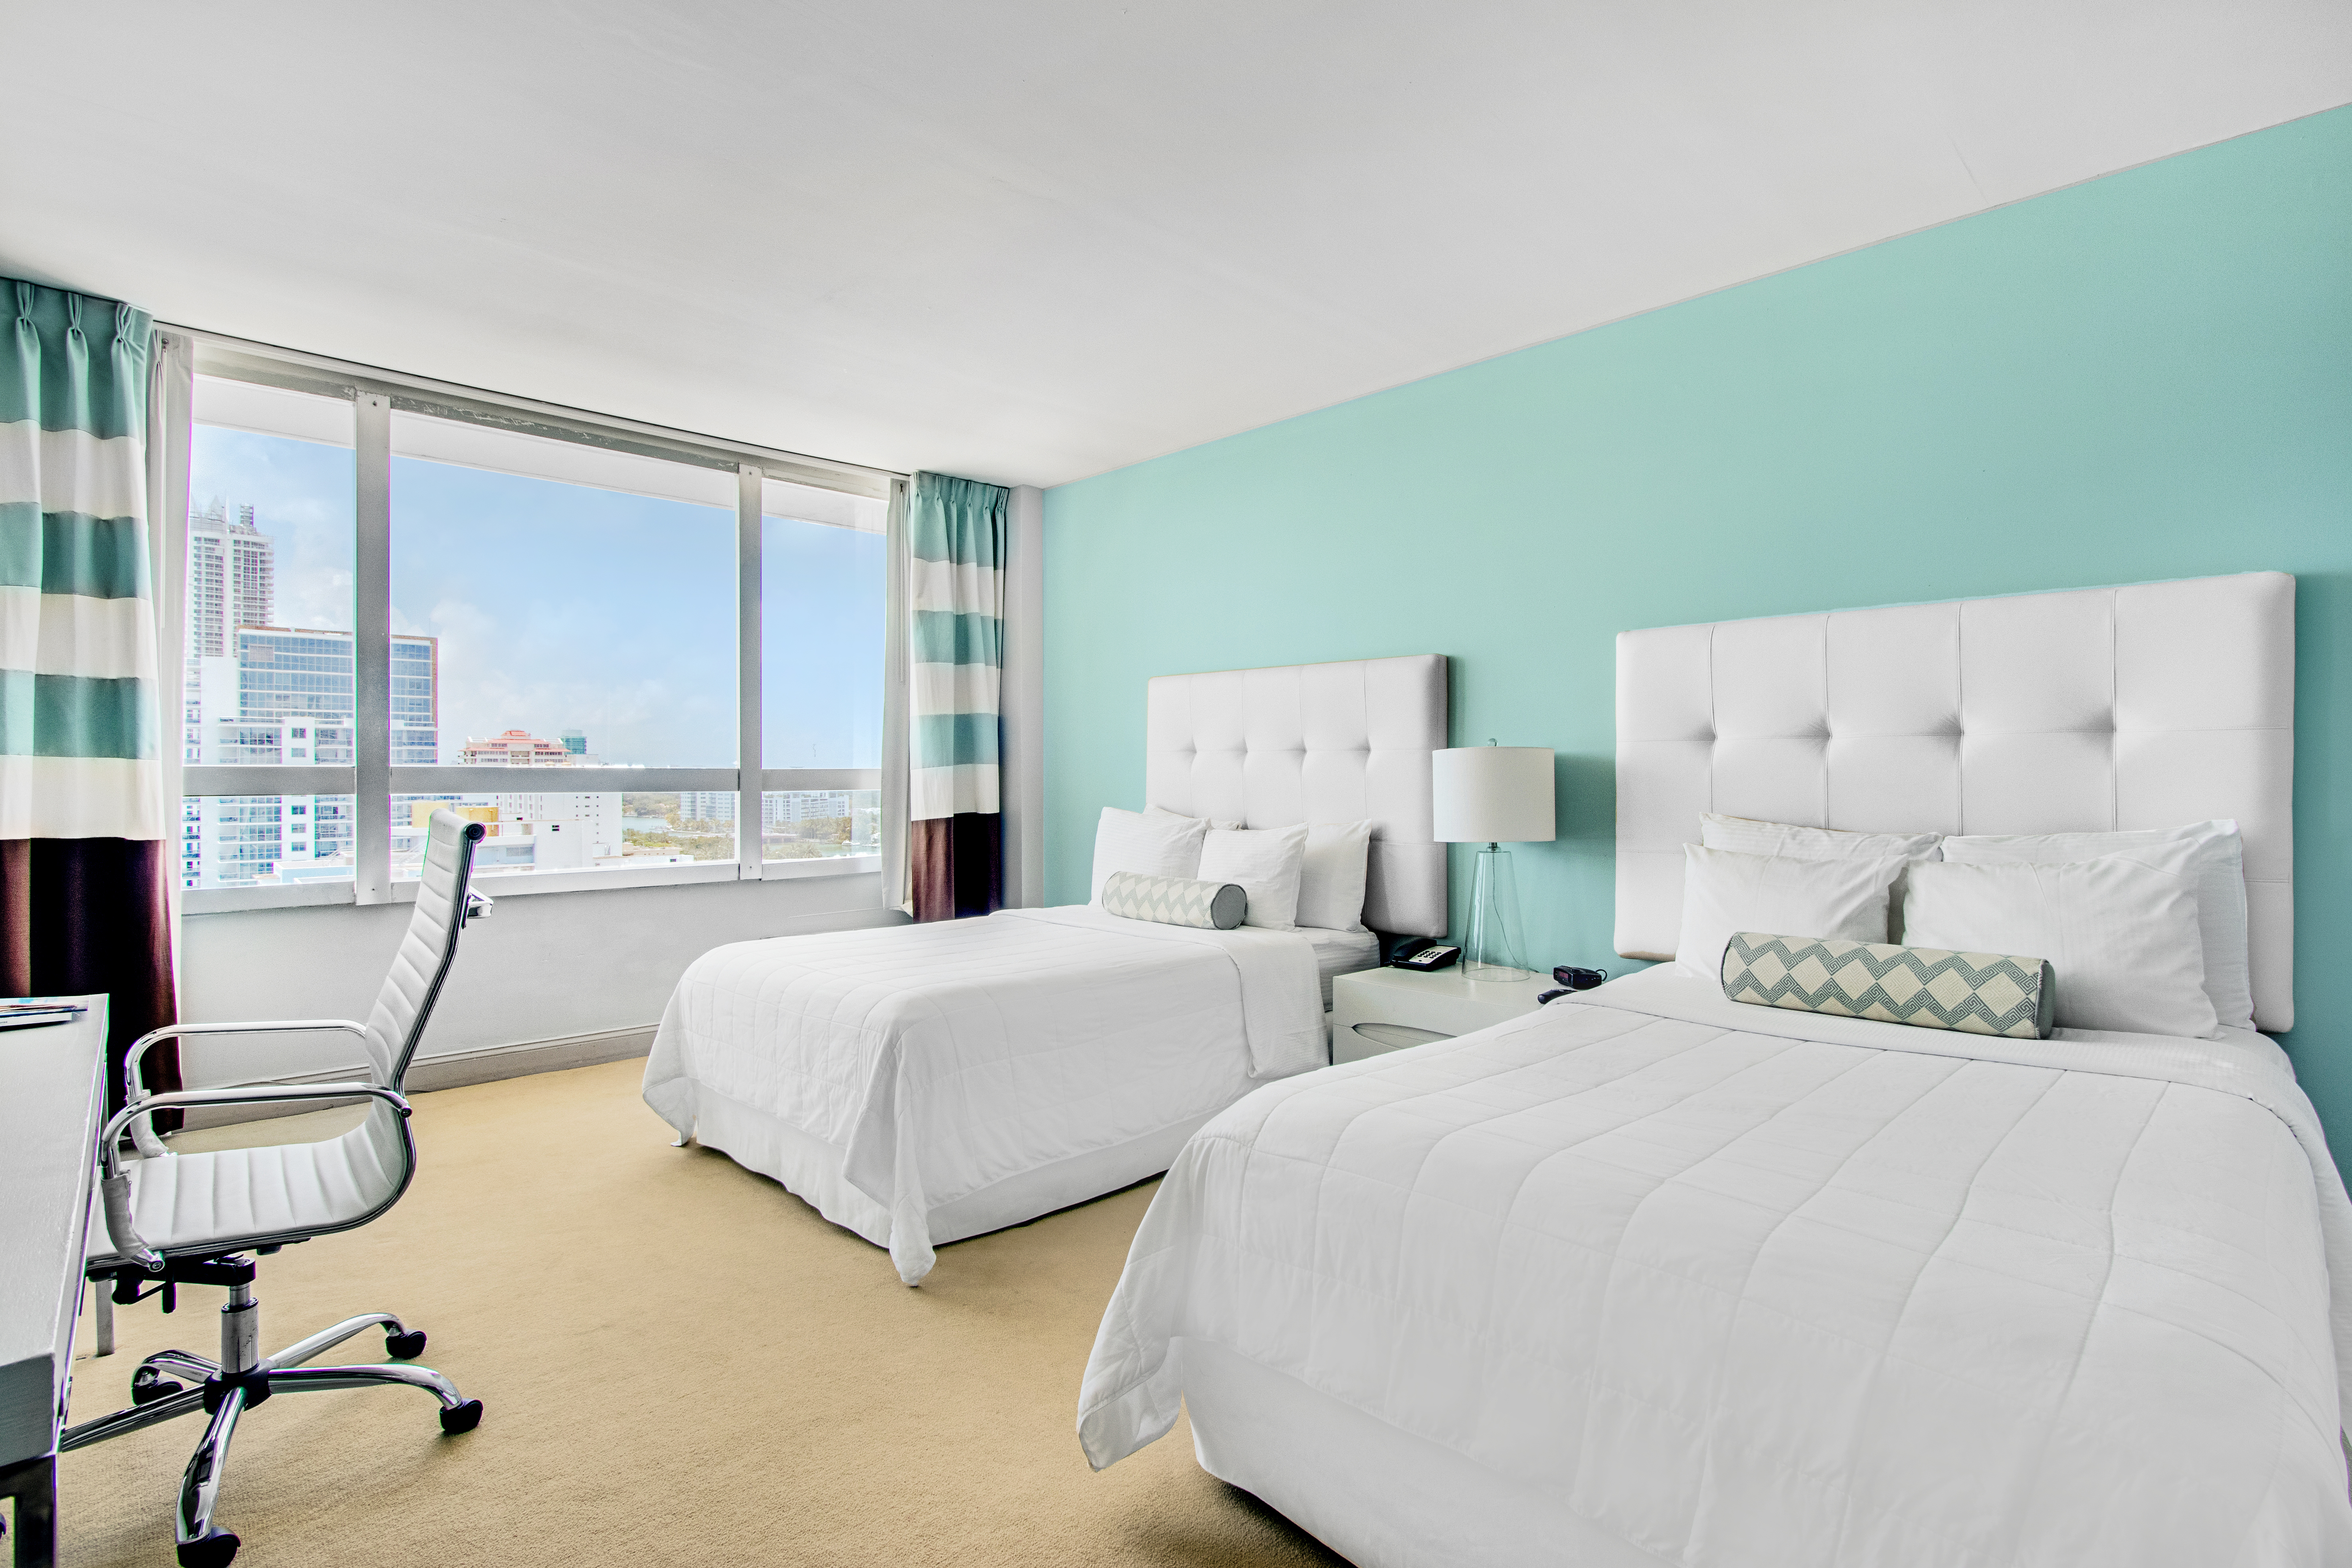 Executive city view 2 Double Beds Room type of the Deauville Beach Resort